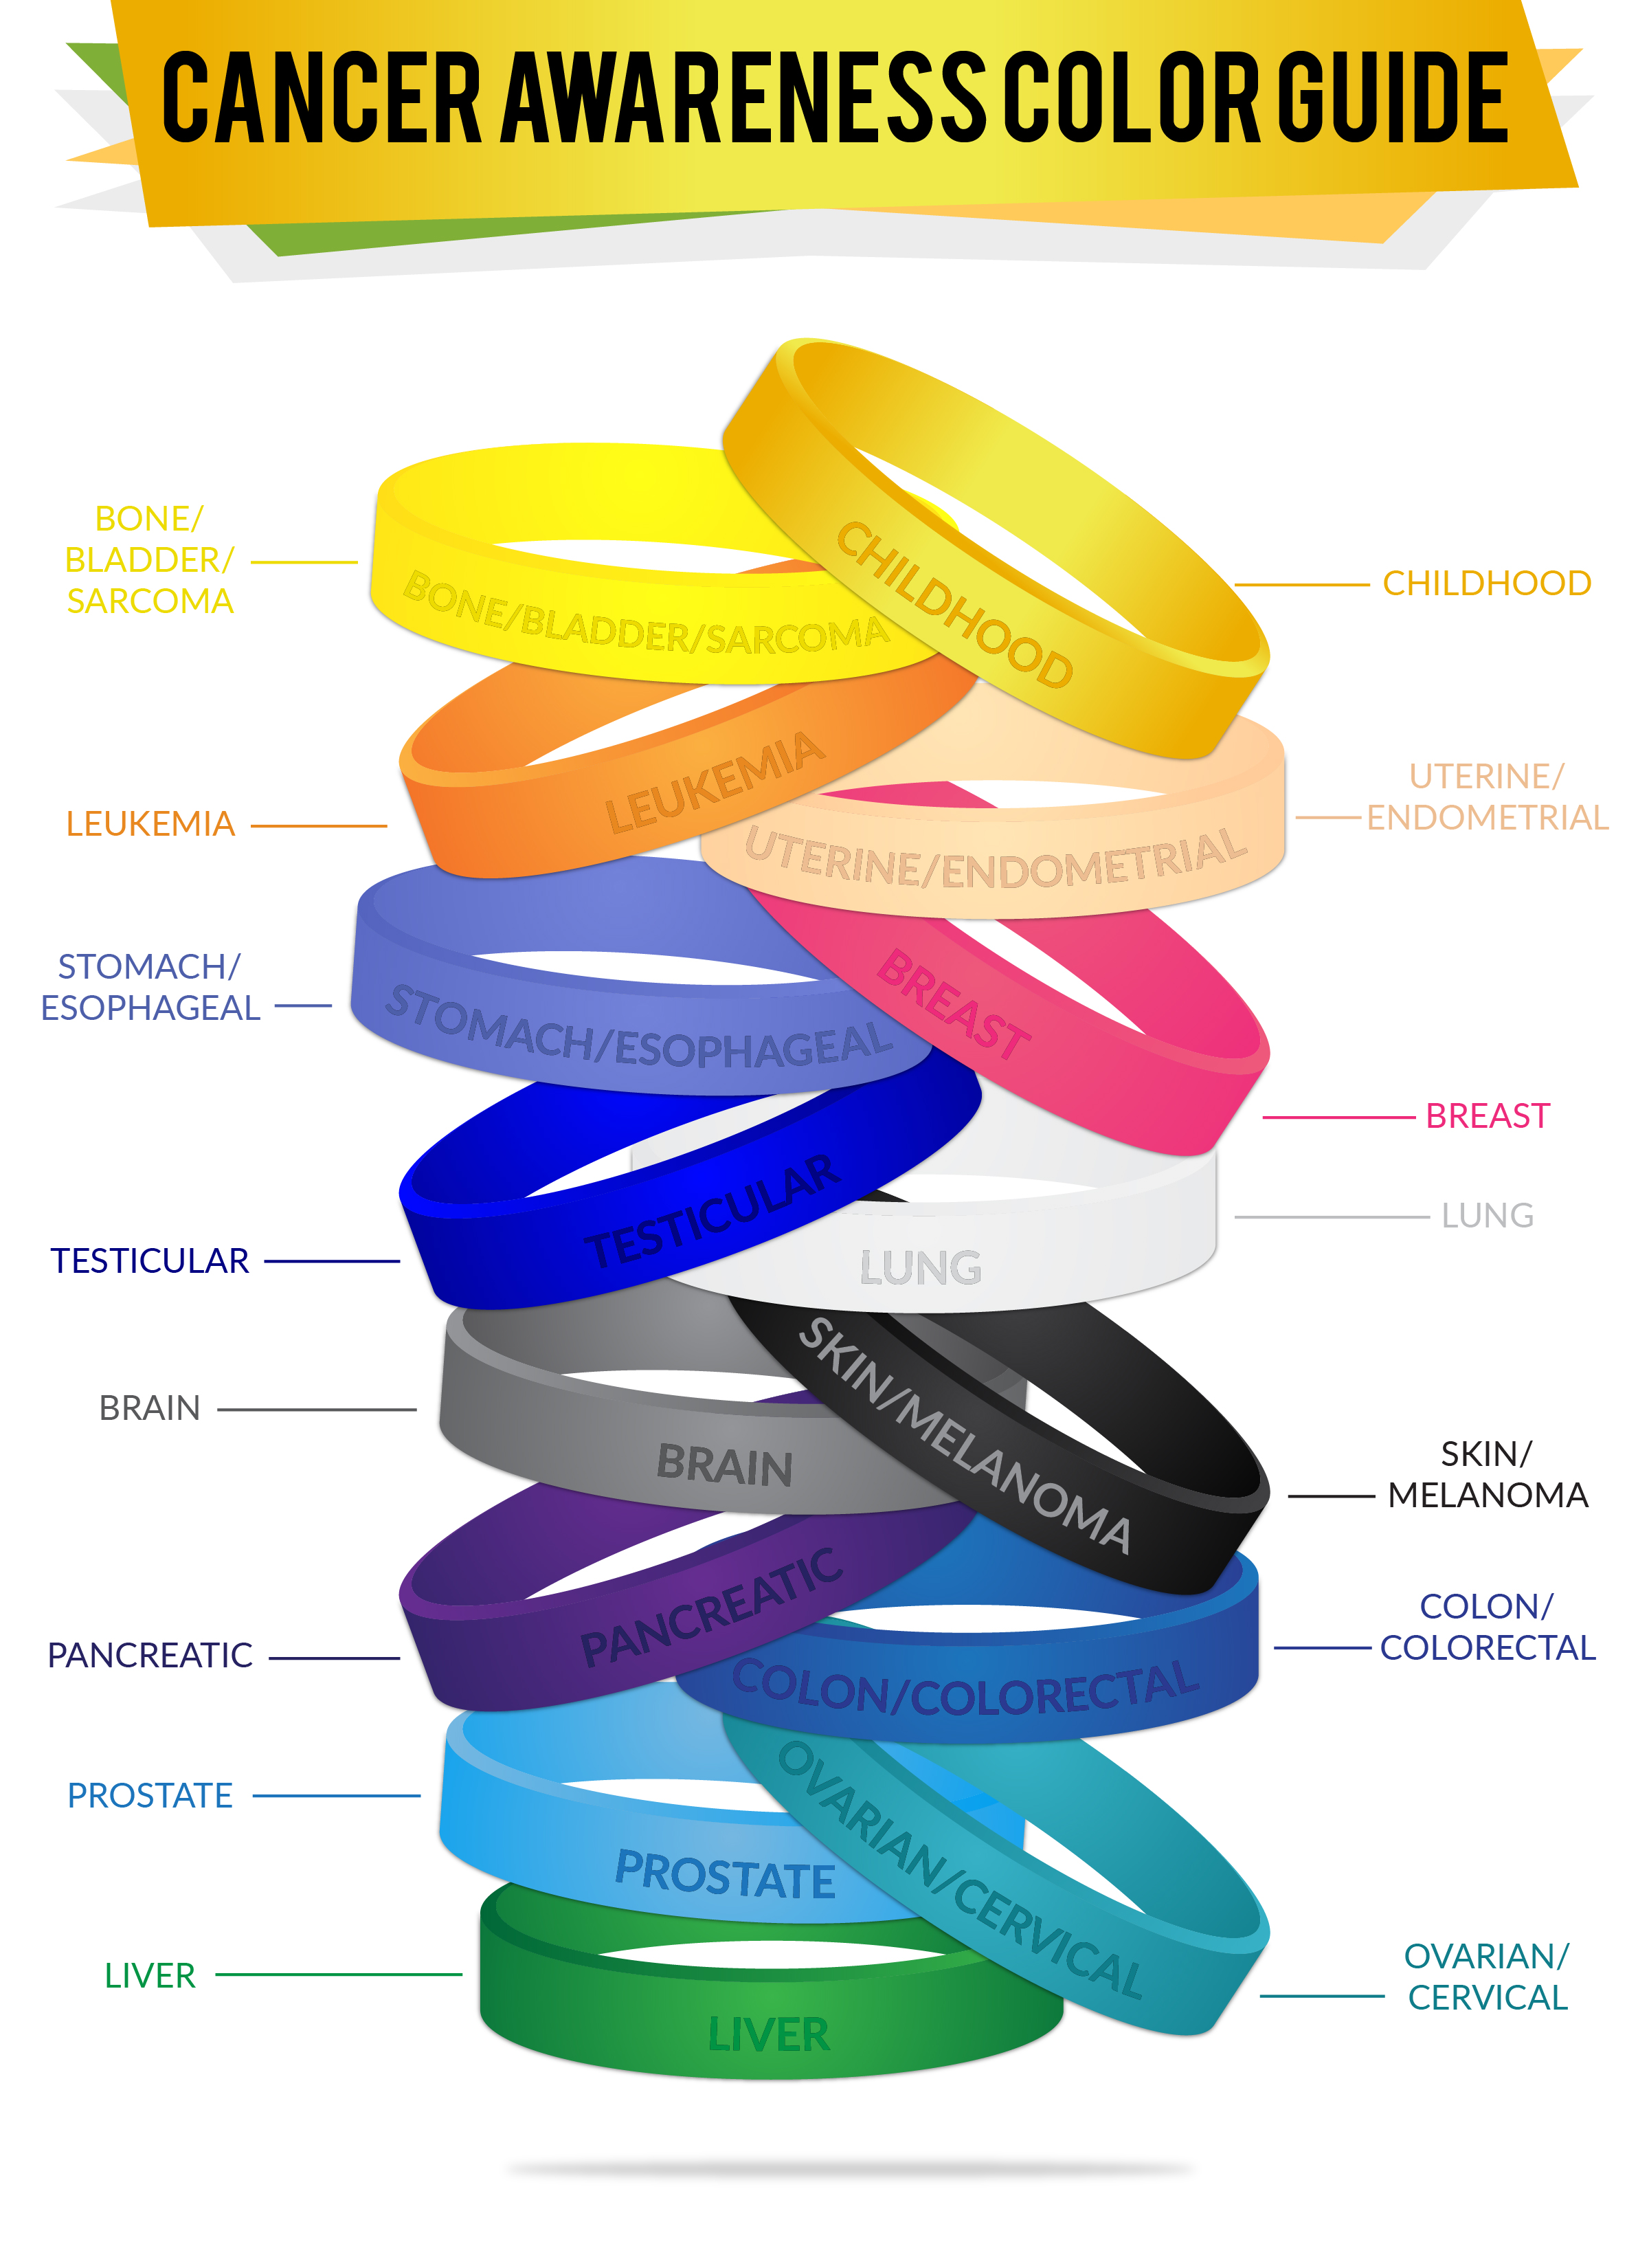 Custom cancer awareness support wristbands rapidwristbands cancer ribbon color meanings biocorpaavc Gallery